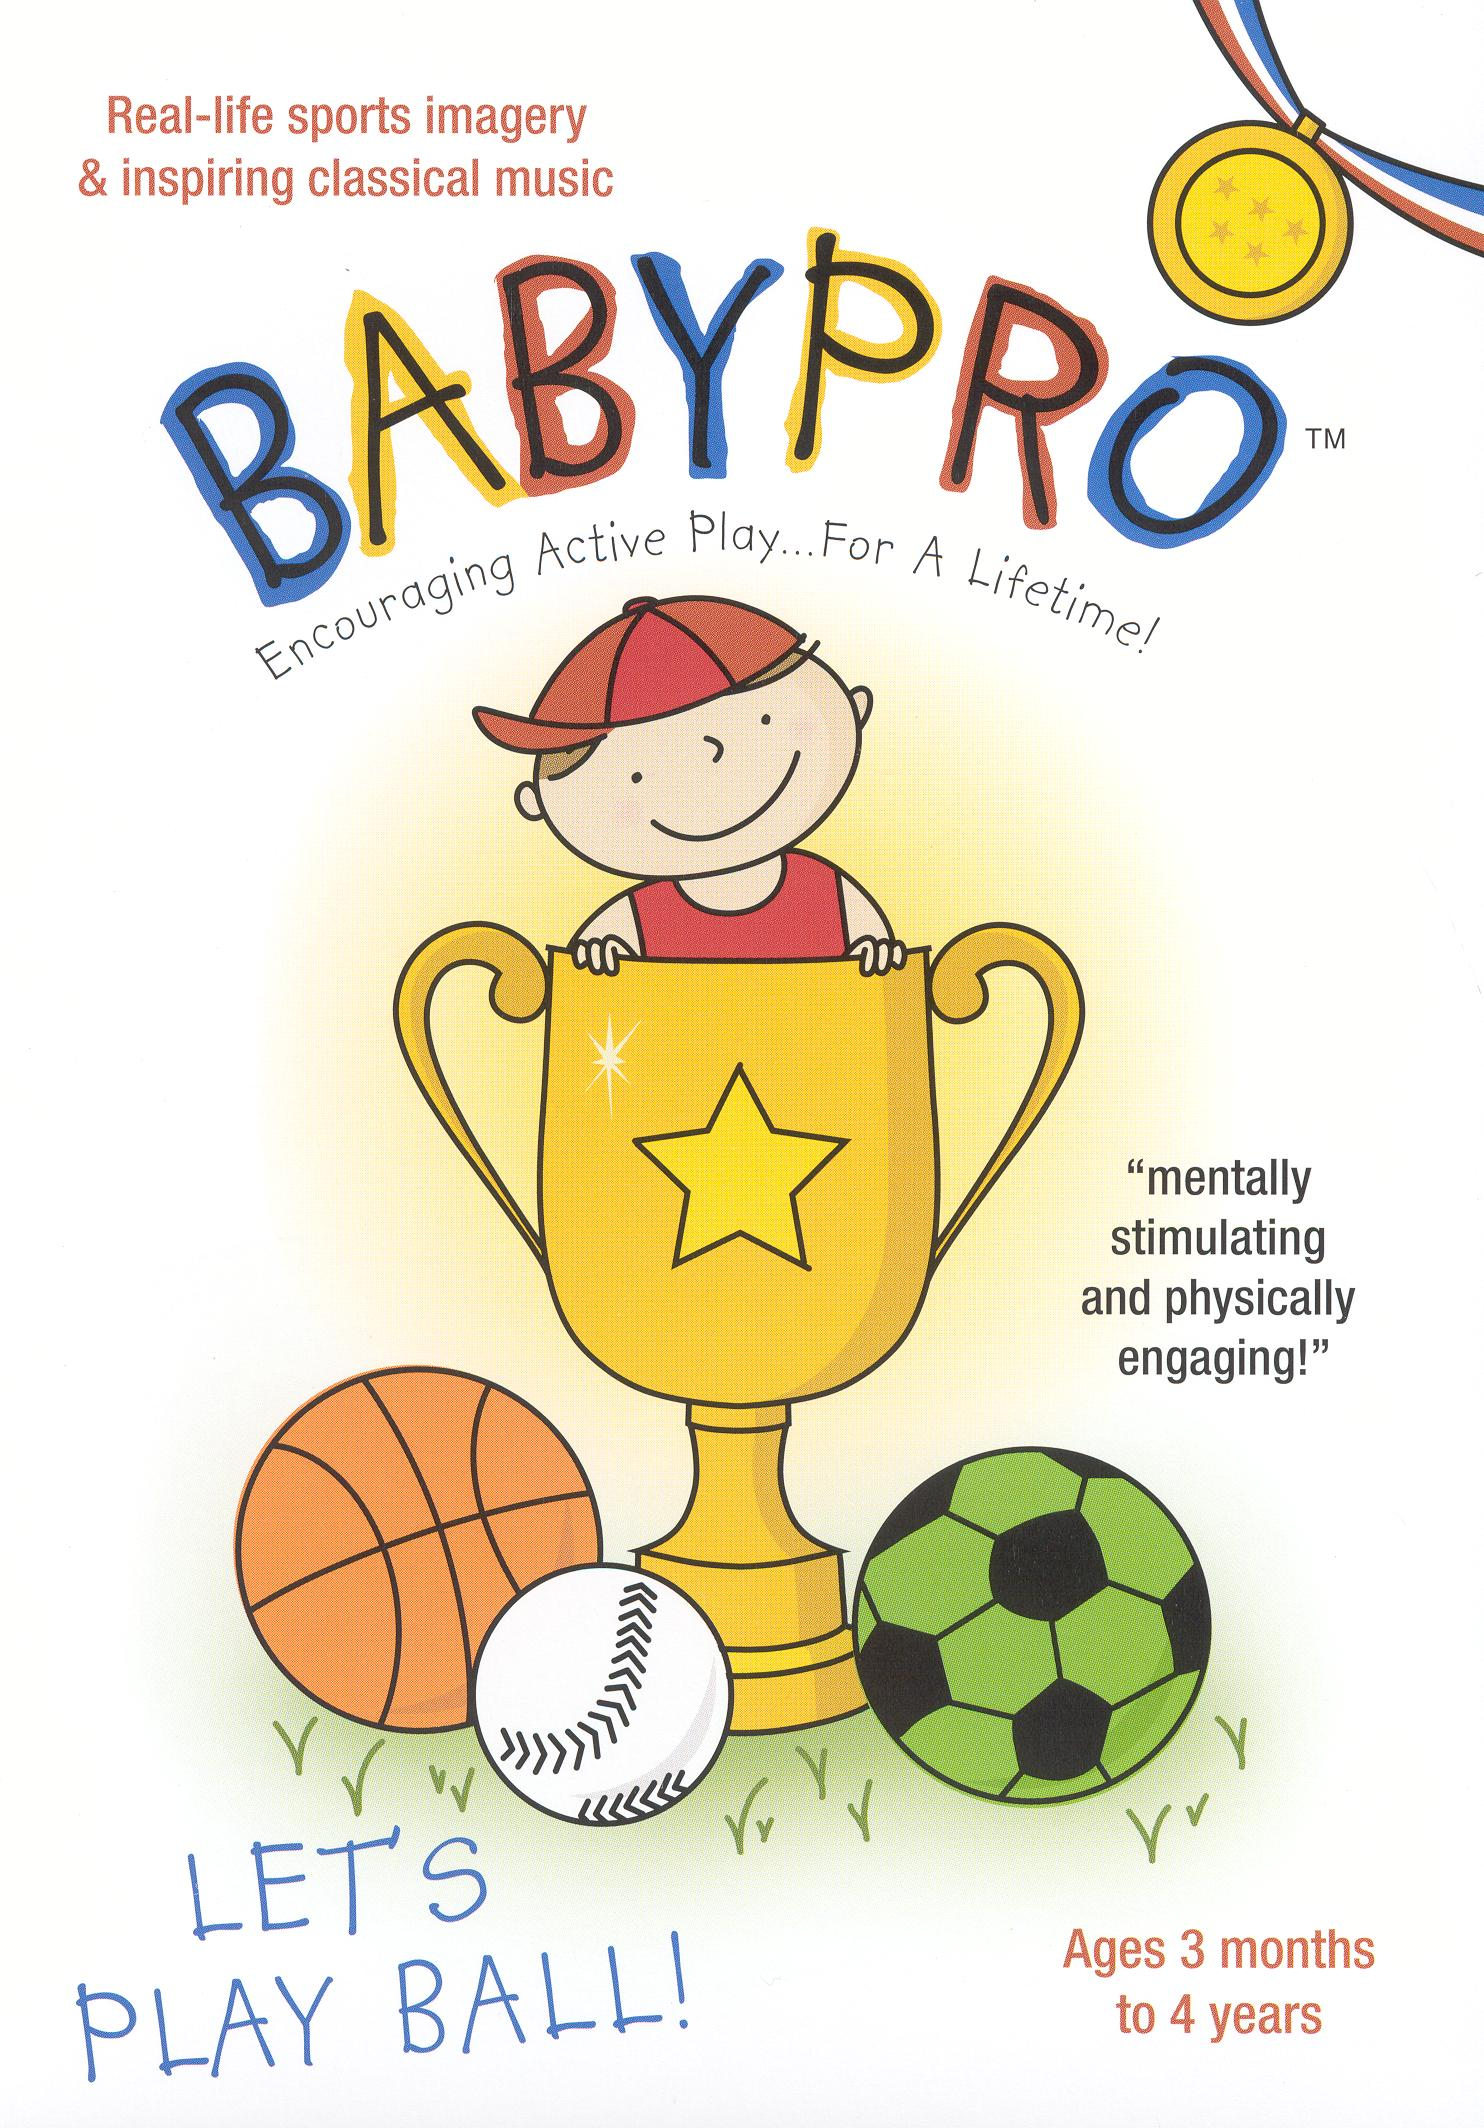 BabyPro: Let's Play Ball